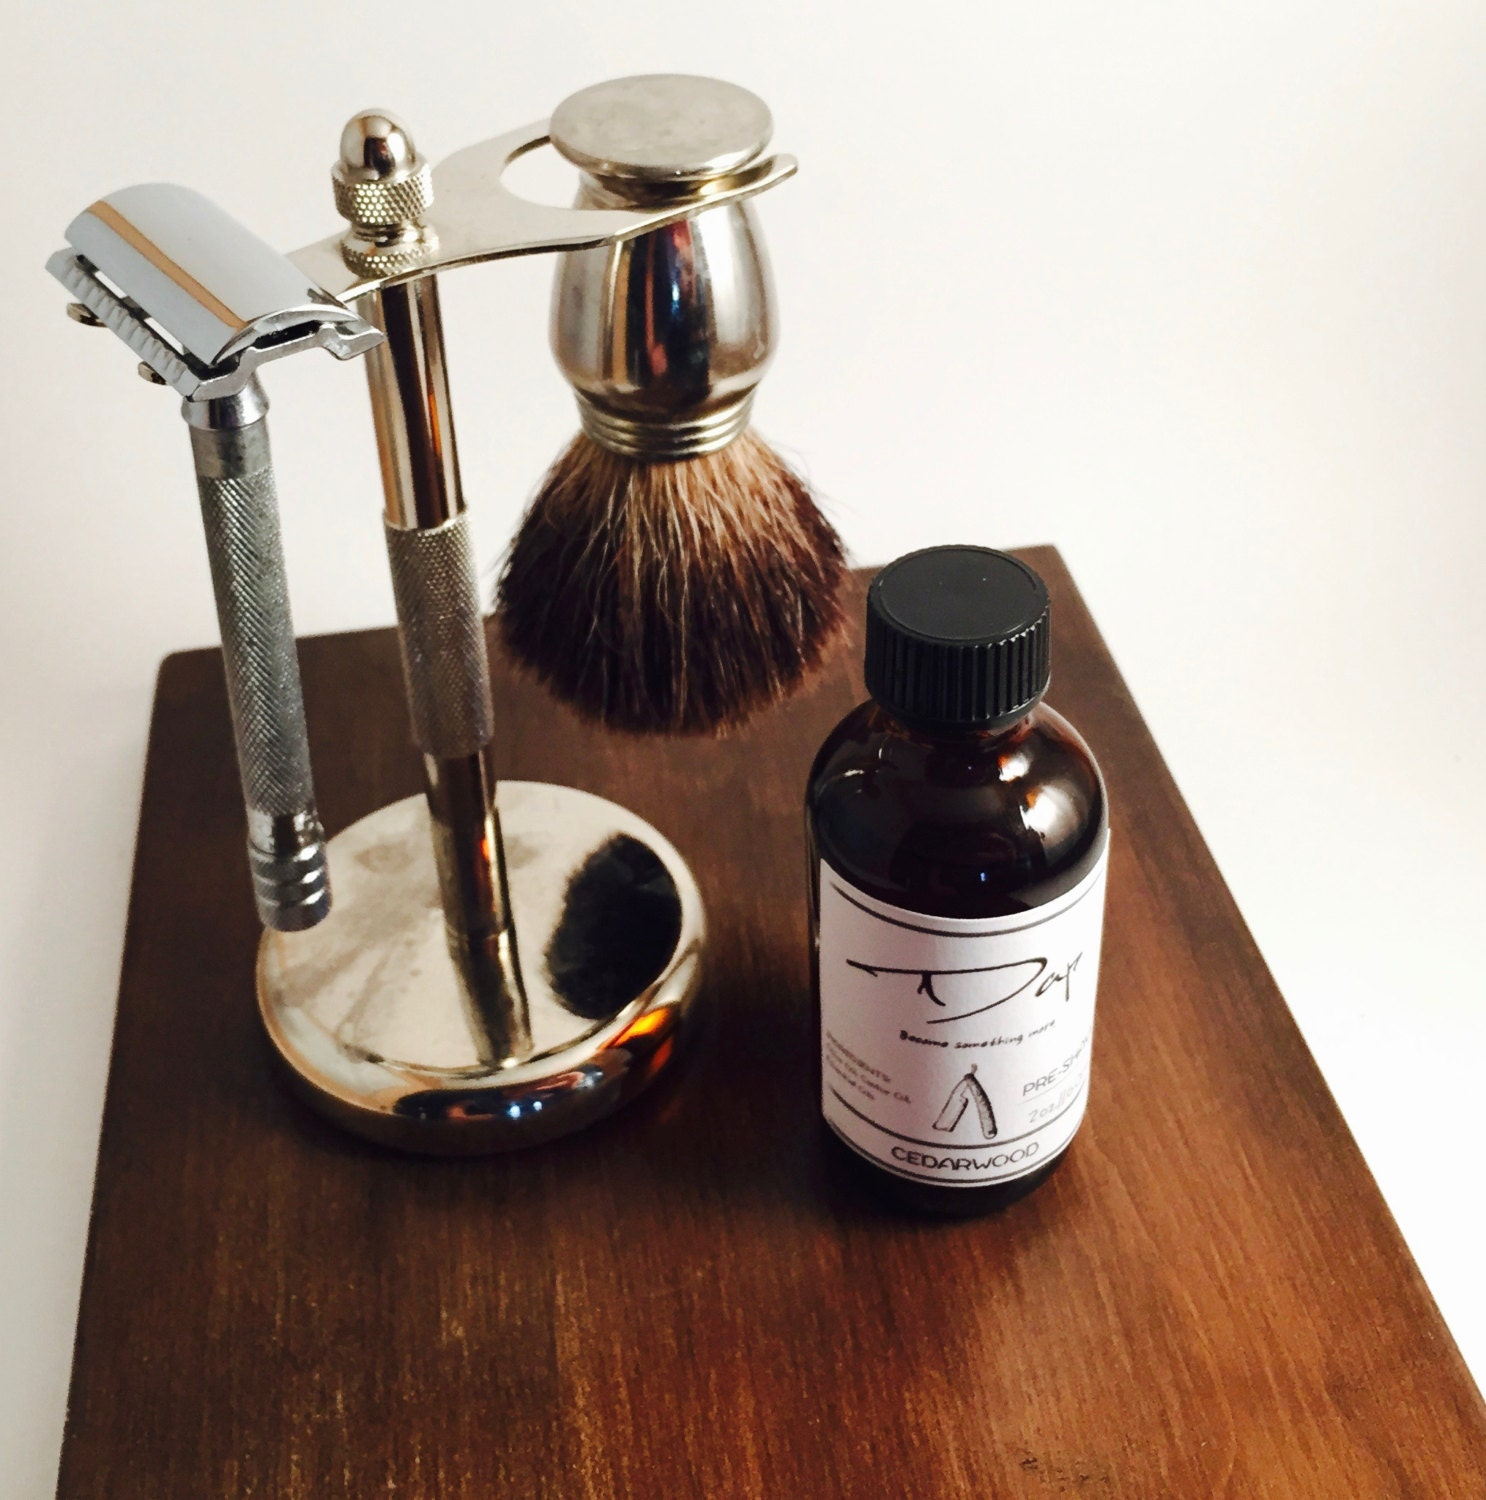 pre shave oil cedarwood by dap shaving fathers day gift. Black Bedroom Furniture Sets. Home Design Ideas